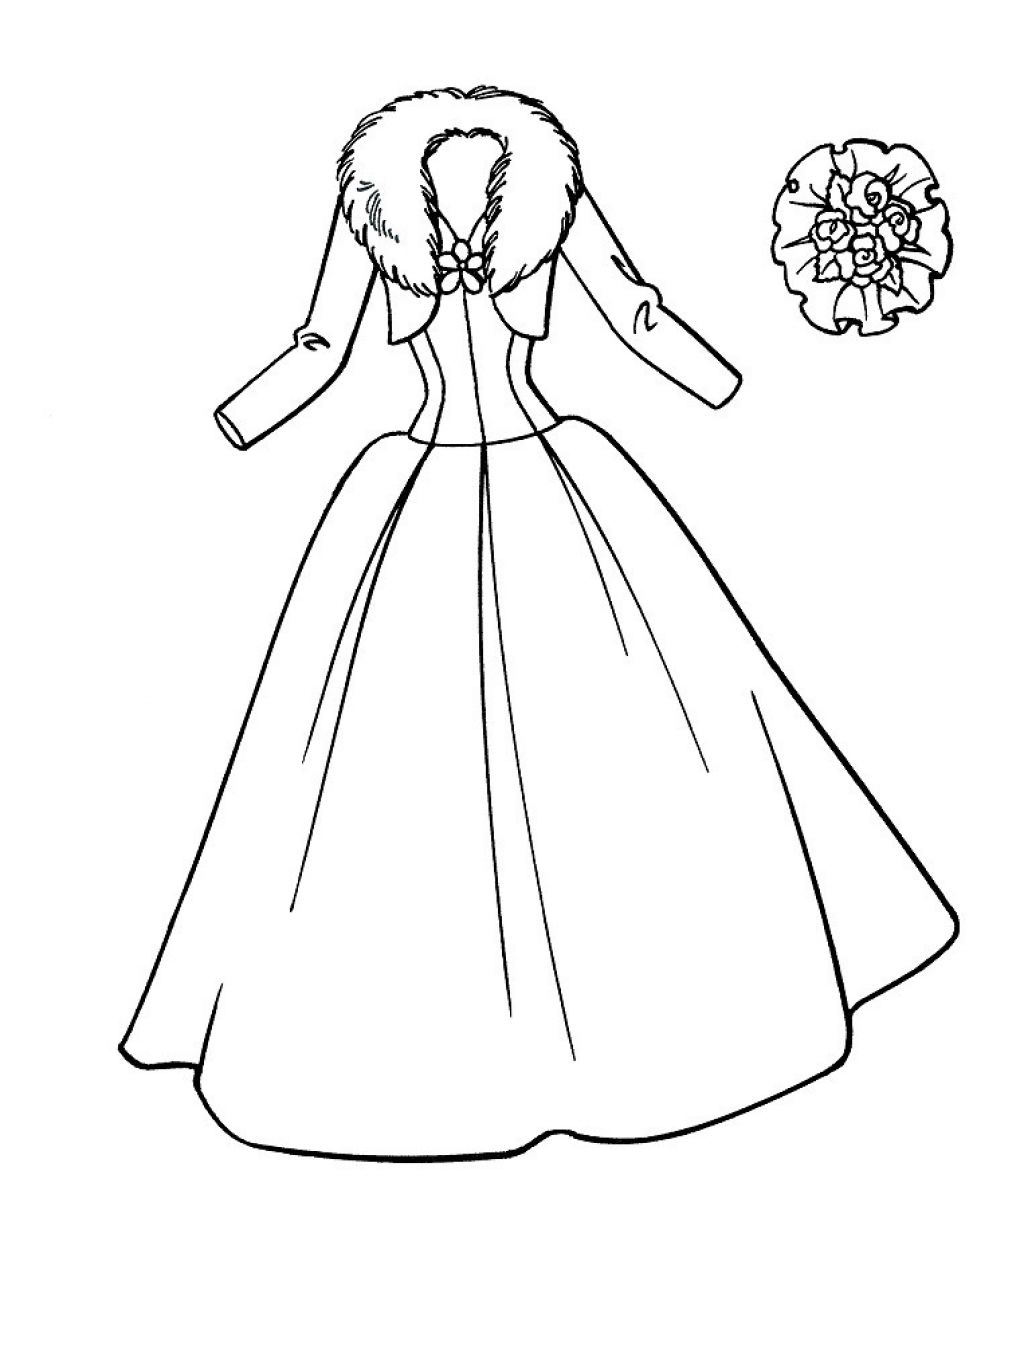 Drawn barbie frock Colouring Pages Dress Pages Dress